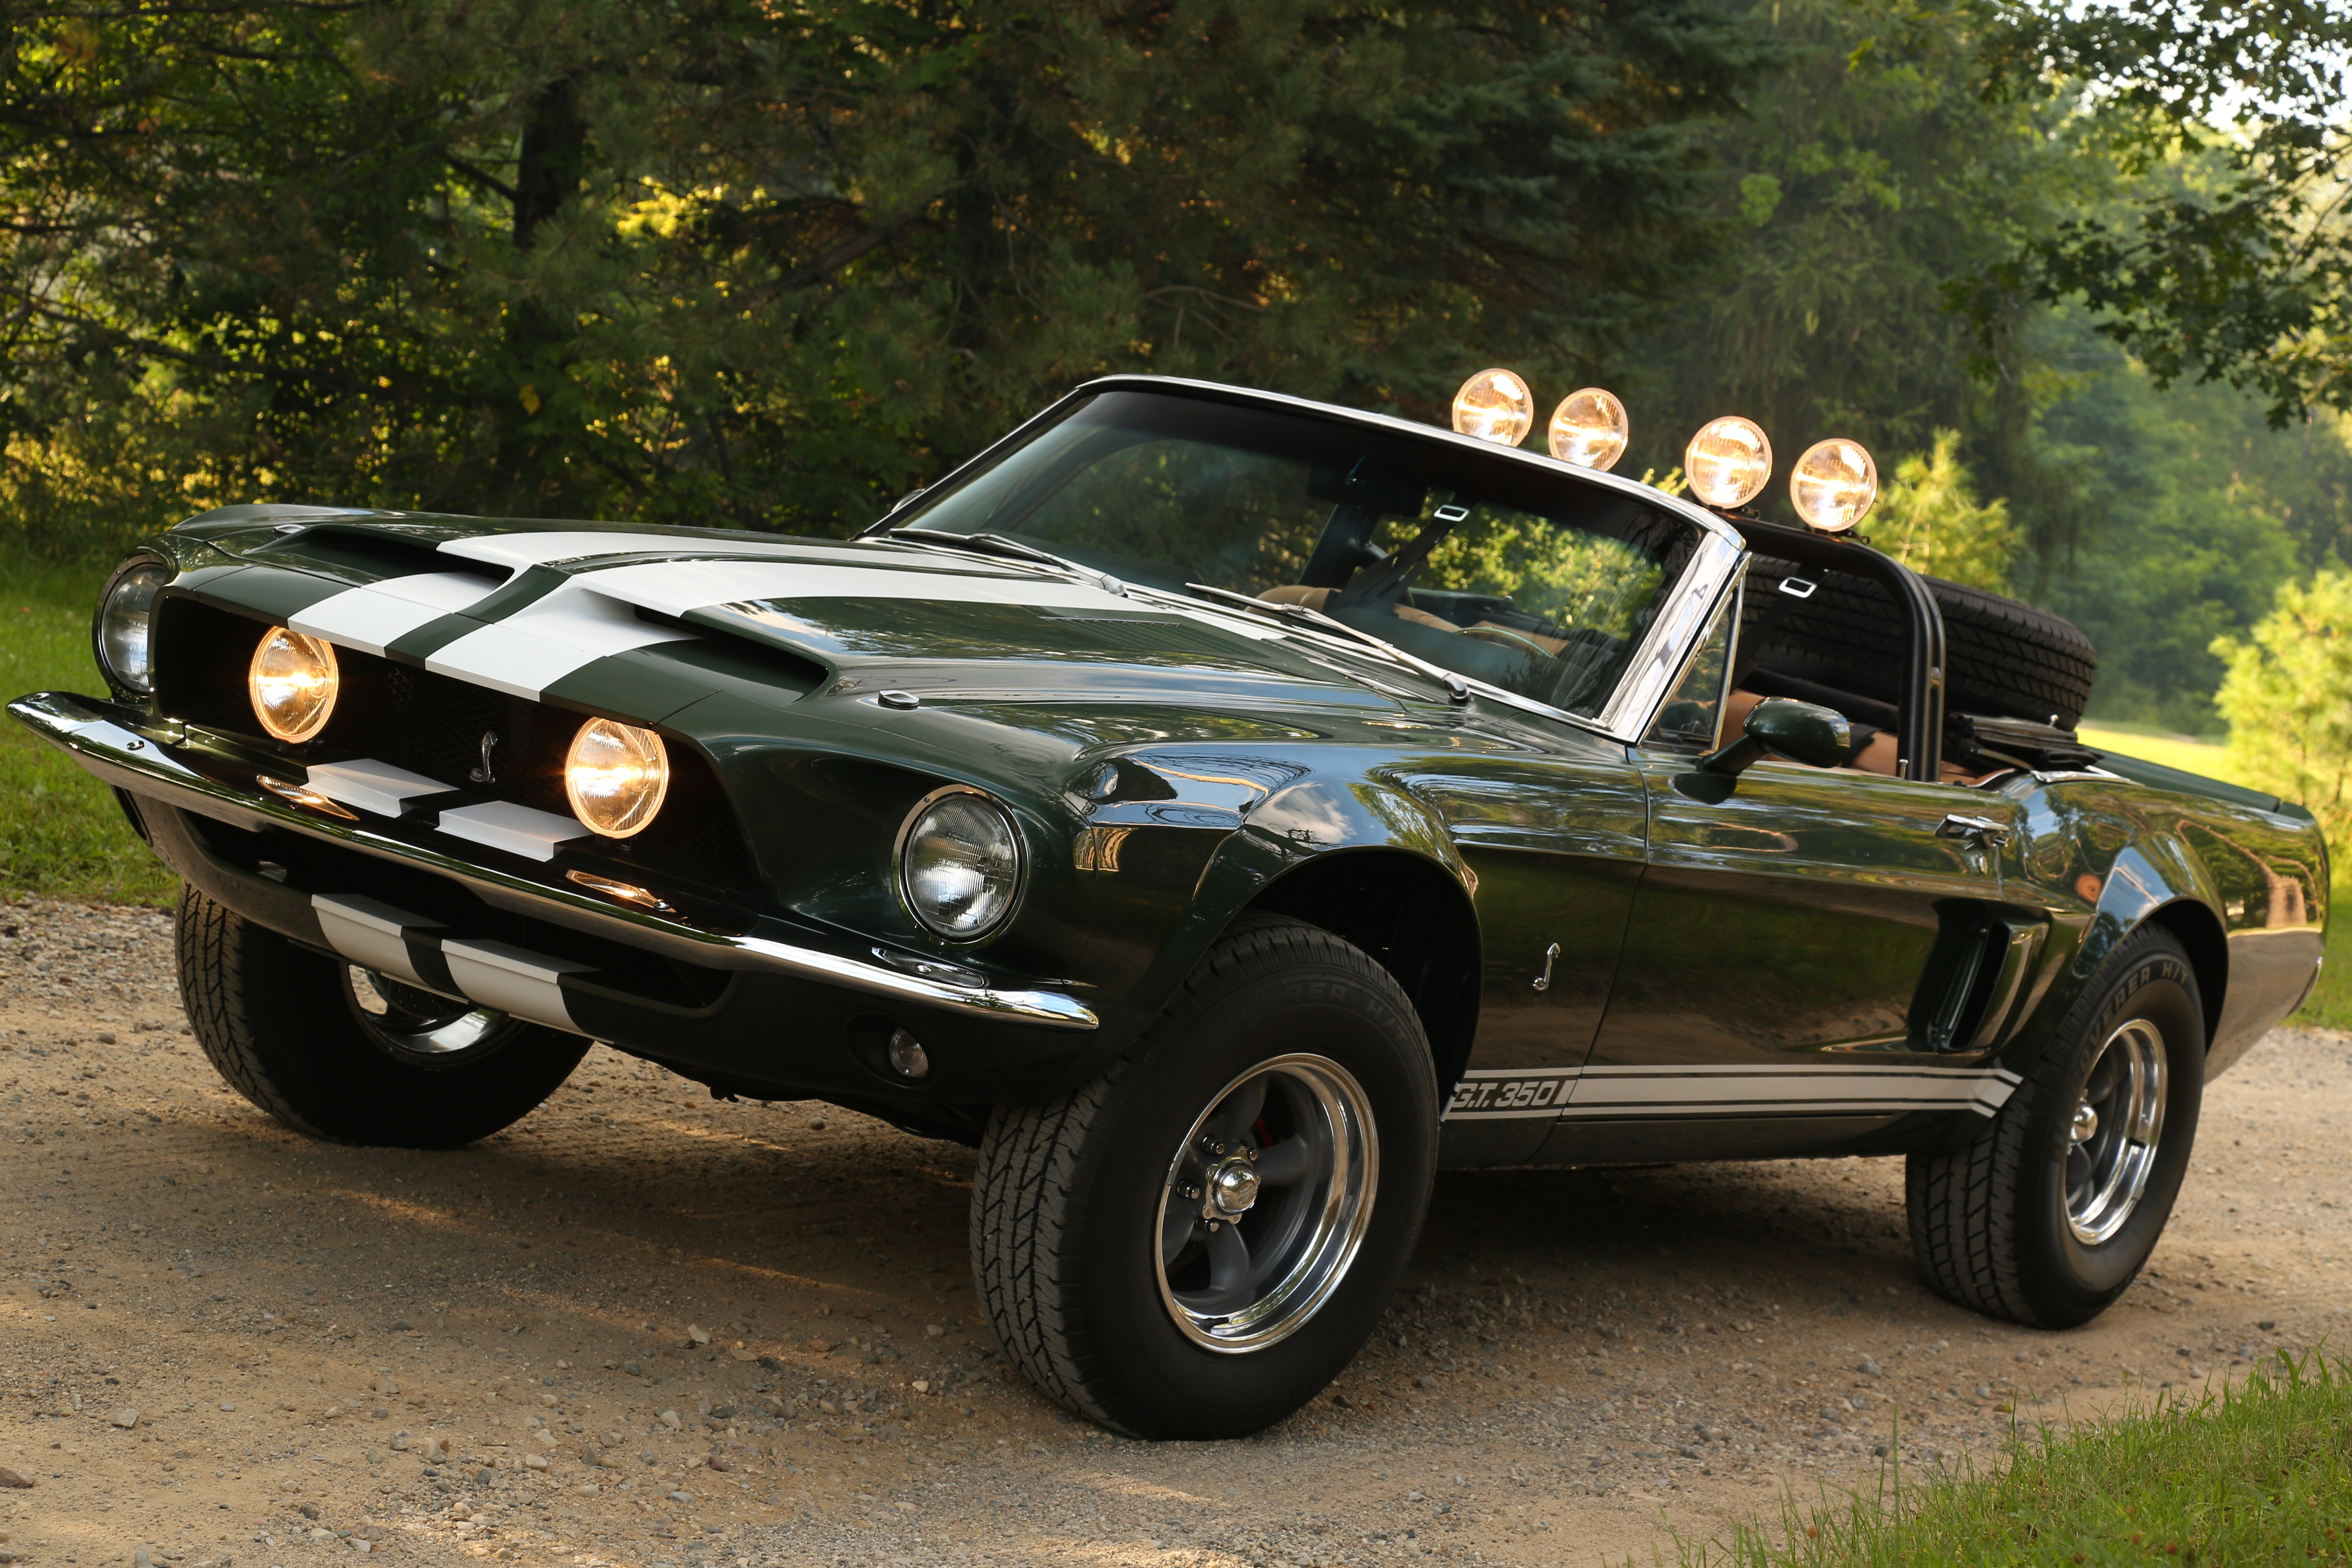 The Recreation of the Thomas Crown Affair Movie Mustang